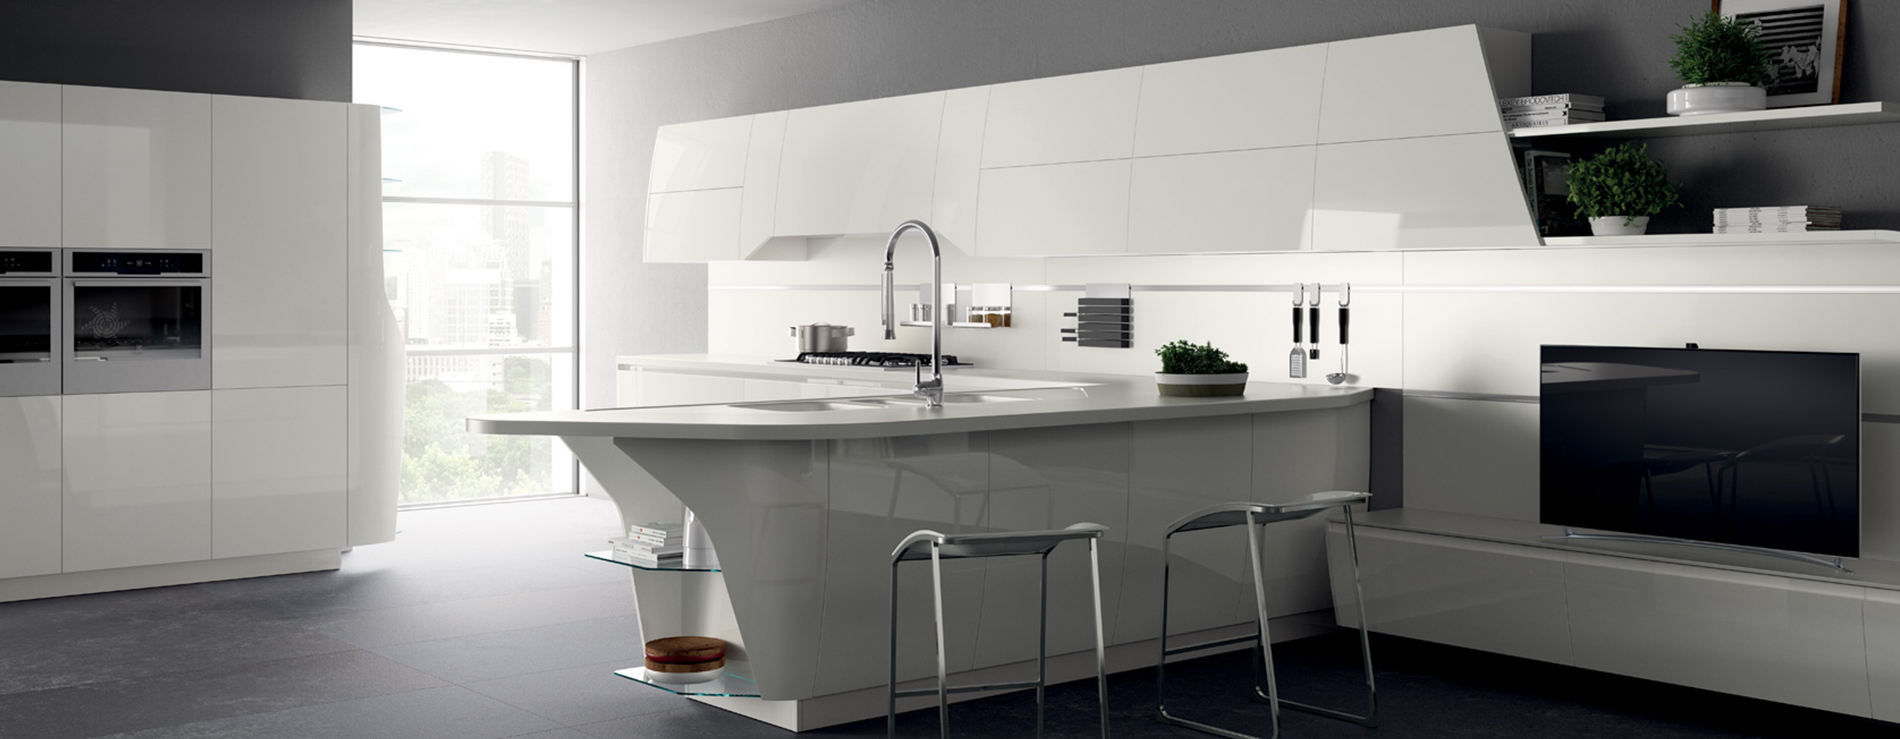 Cucina Di Design Flux : cucina flux swing home catalogo mondo ...